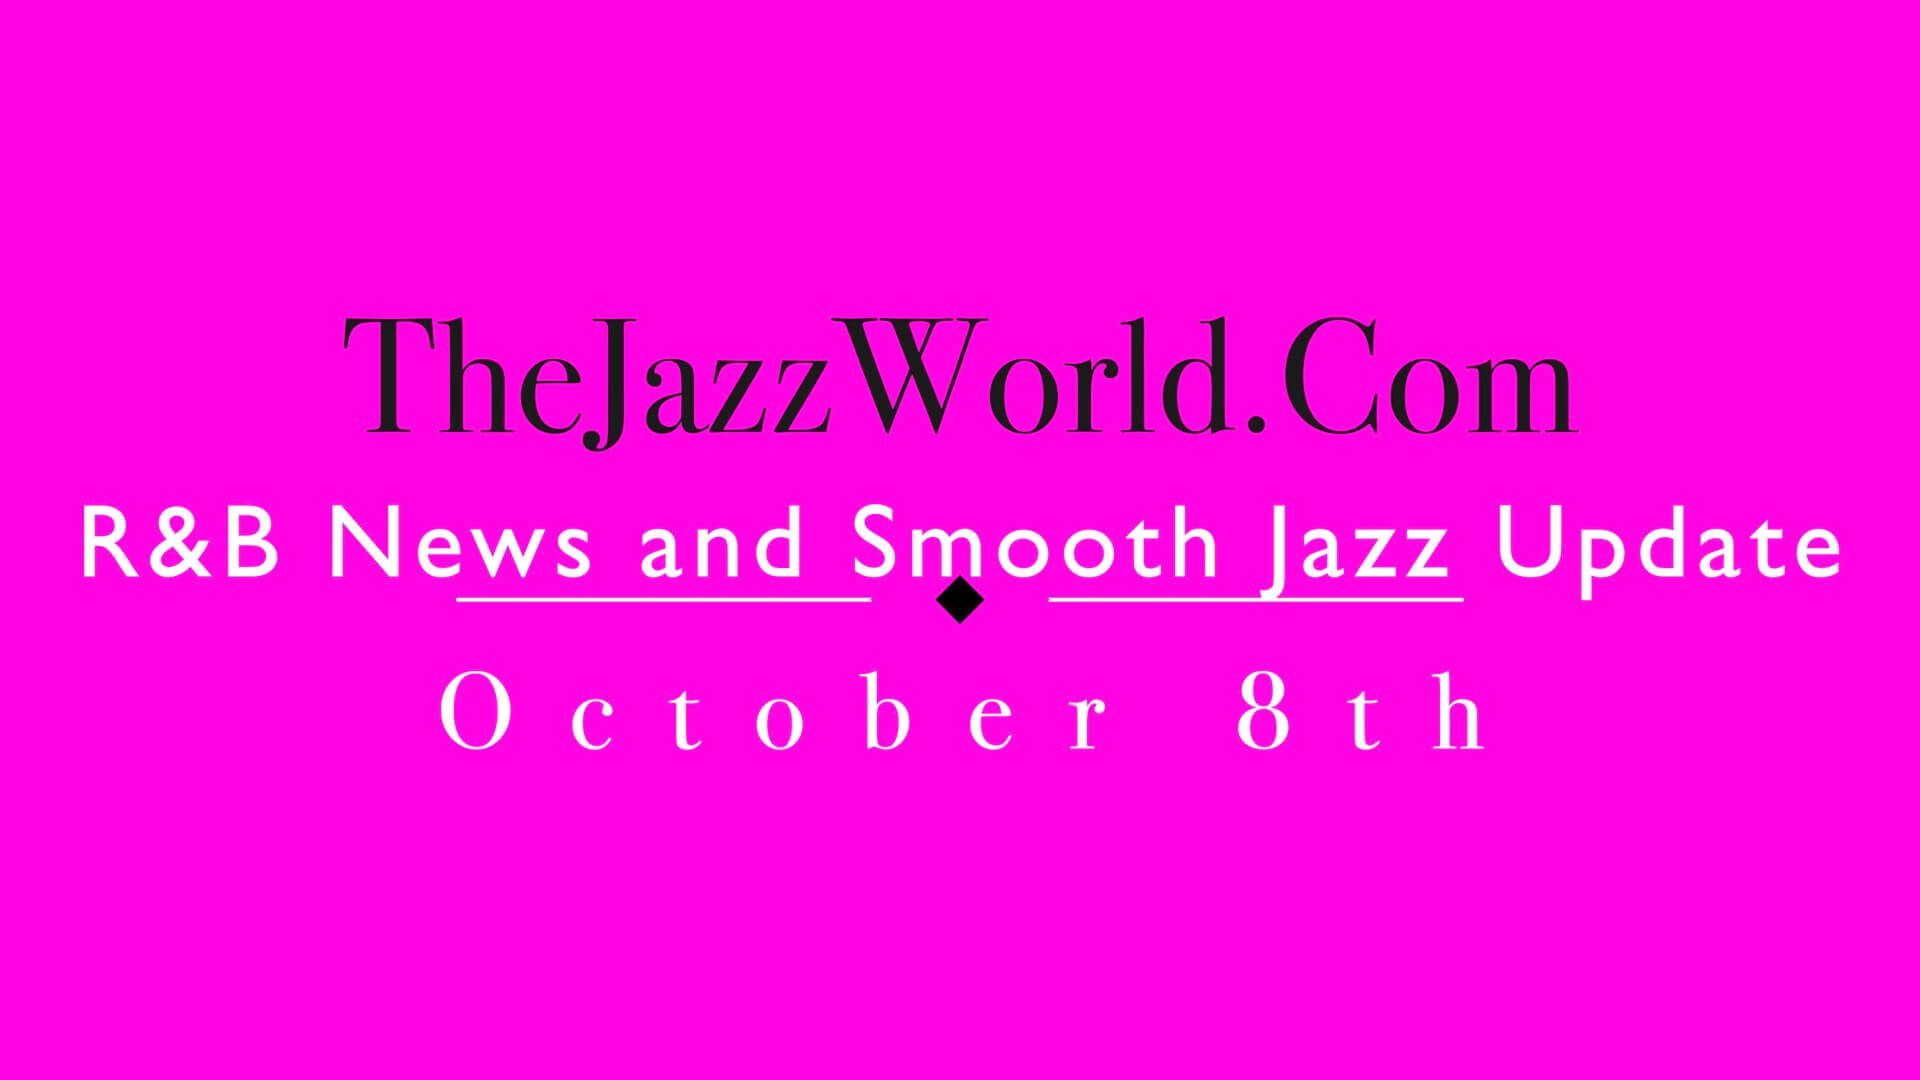 The Jazz World Show 10:8